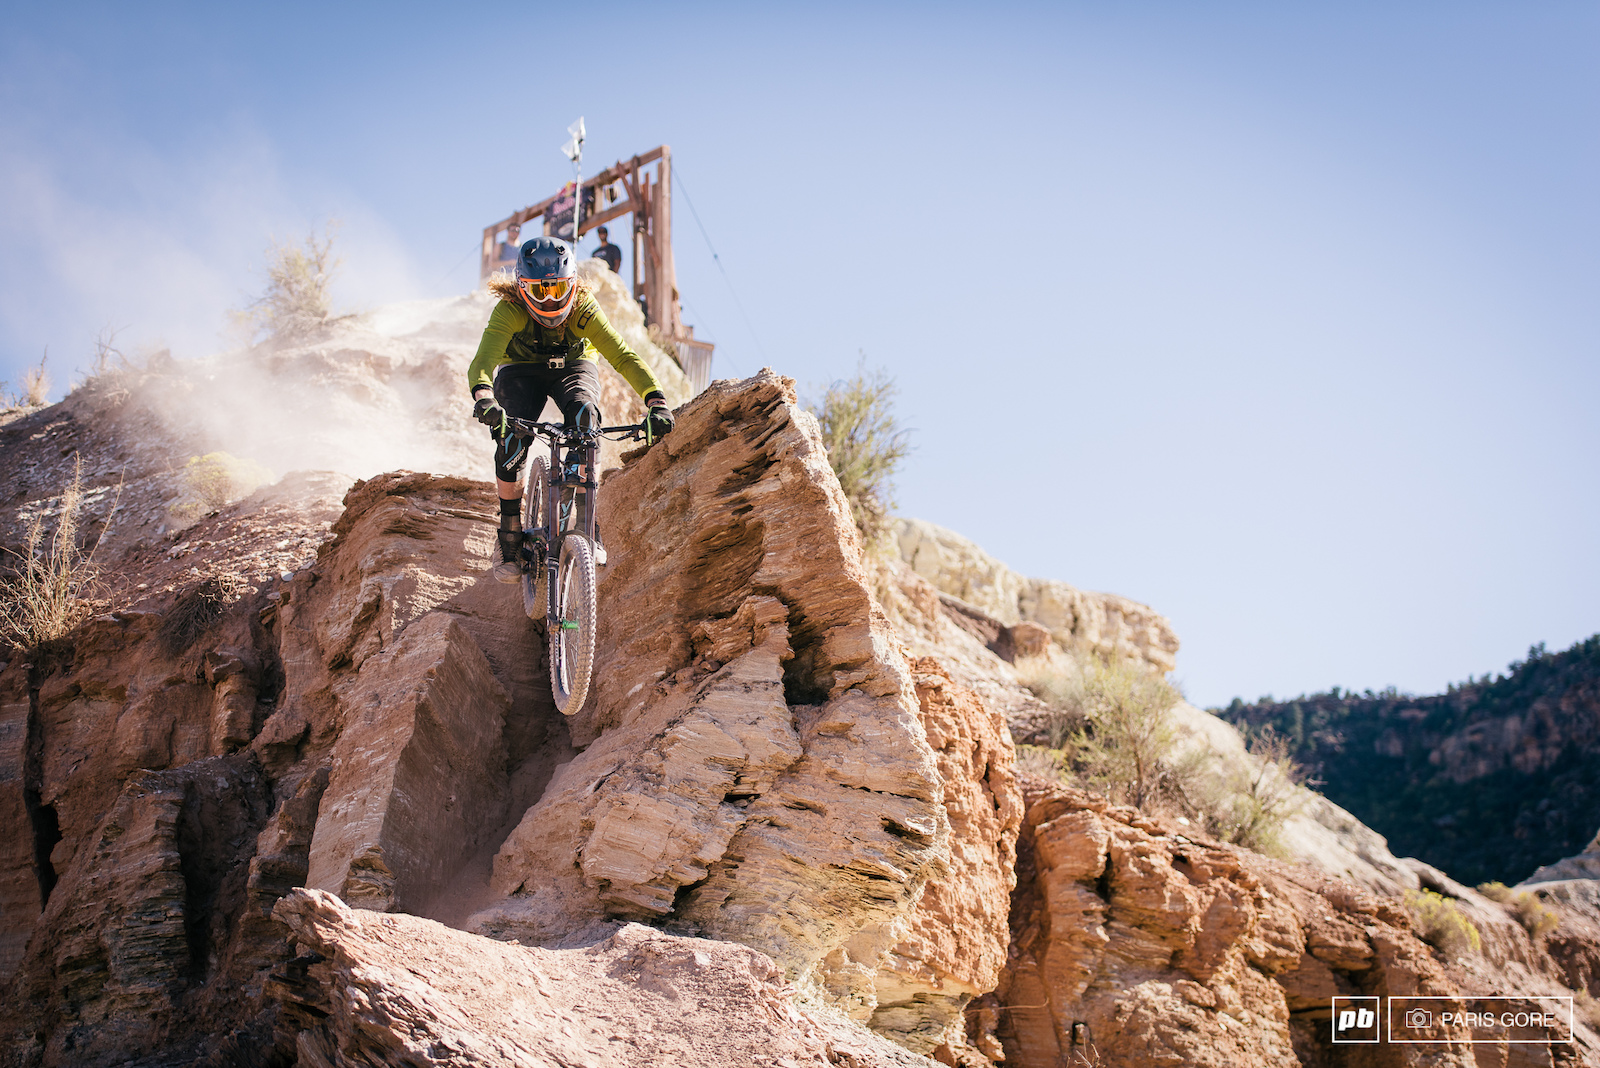 Kelly McGarry dropping in off one of the hardest most exposed moves in Rampage during his GoPro course preview run.